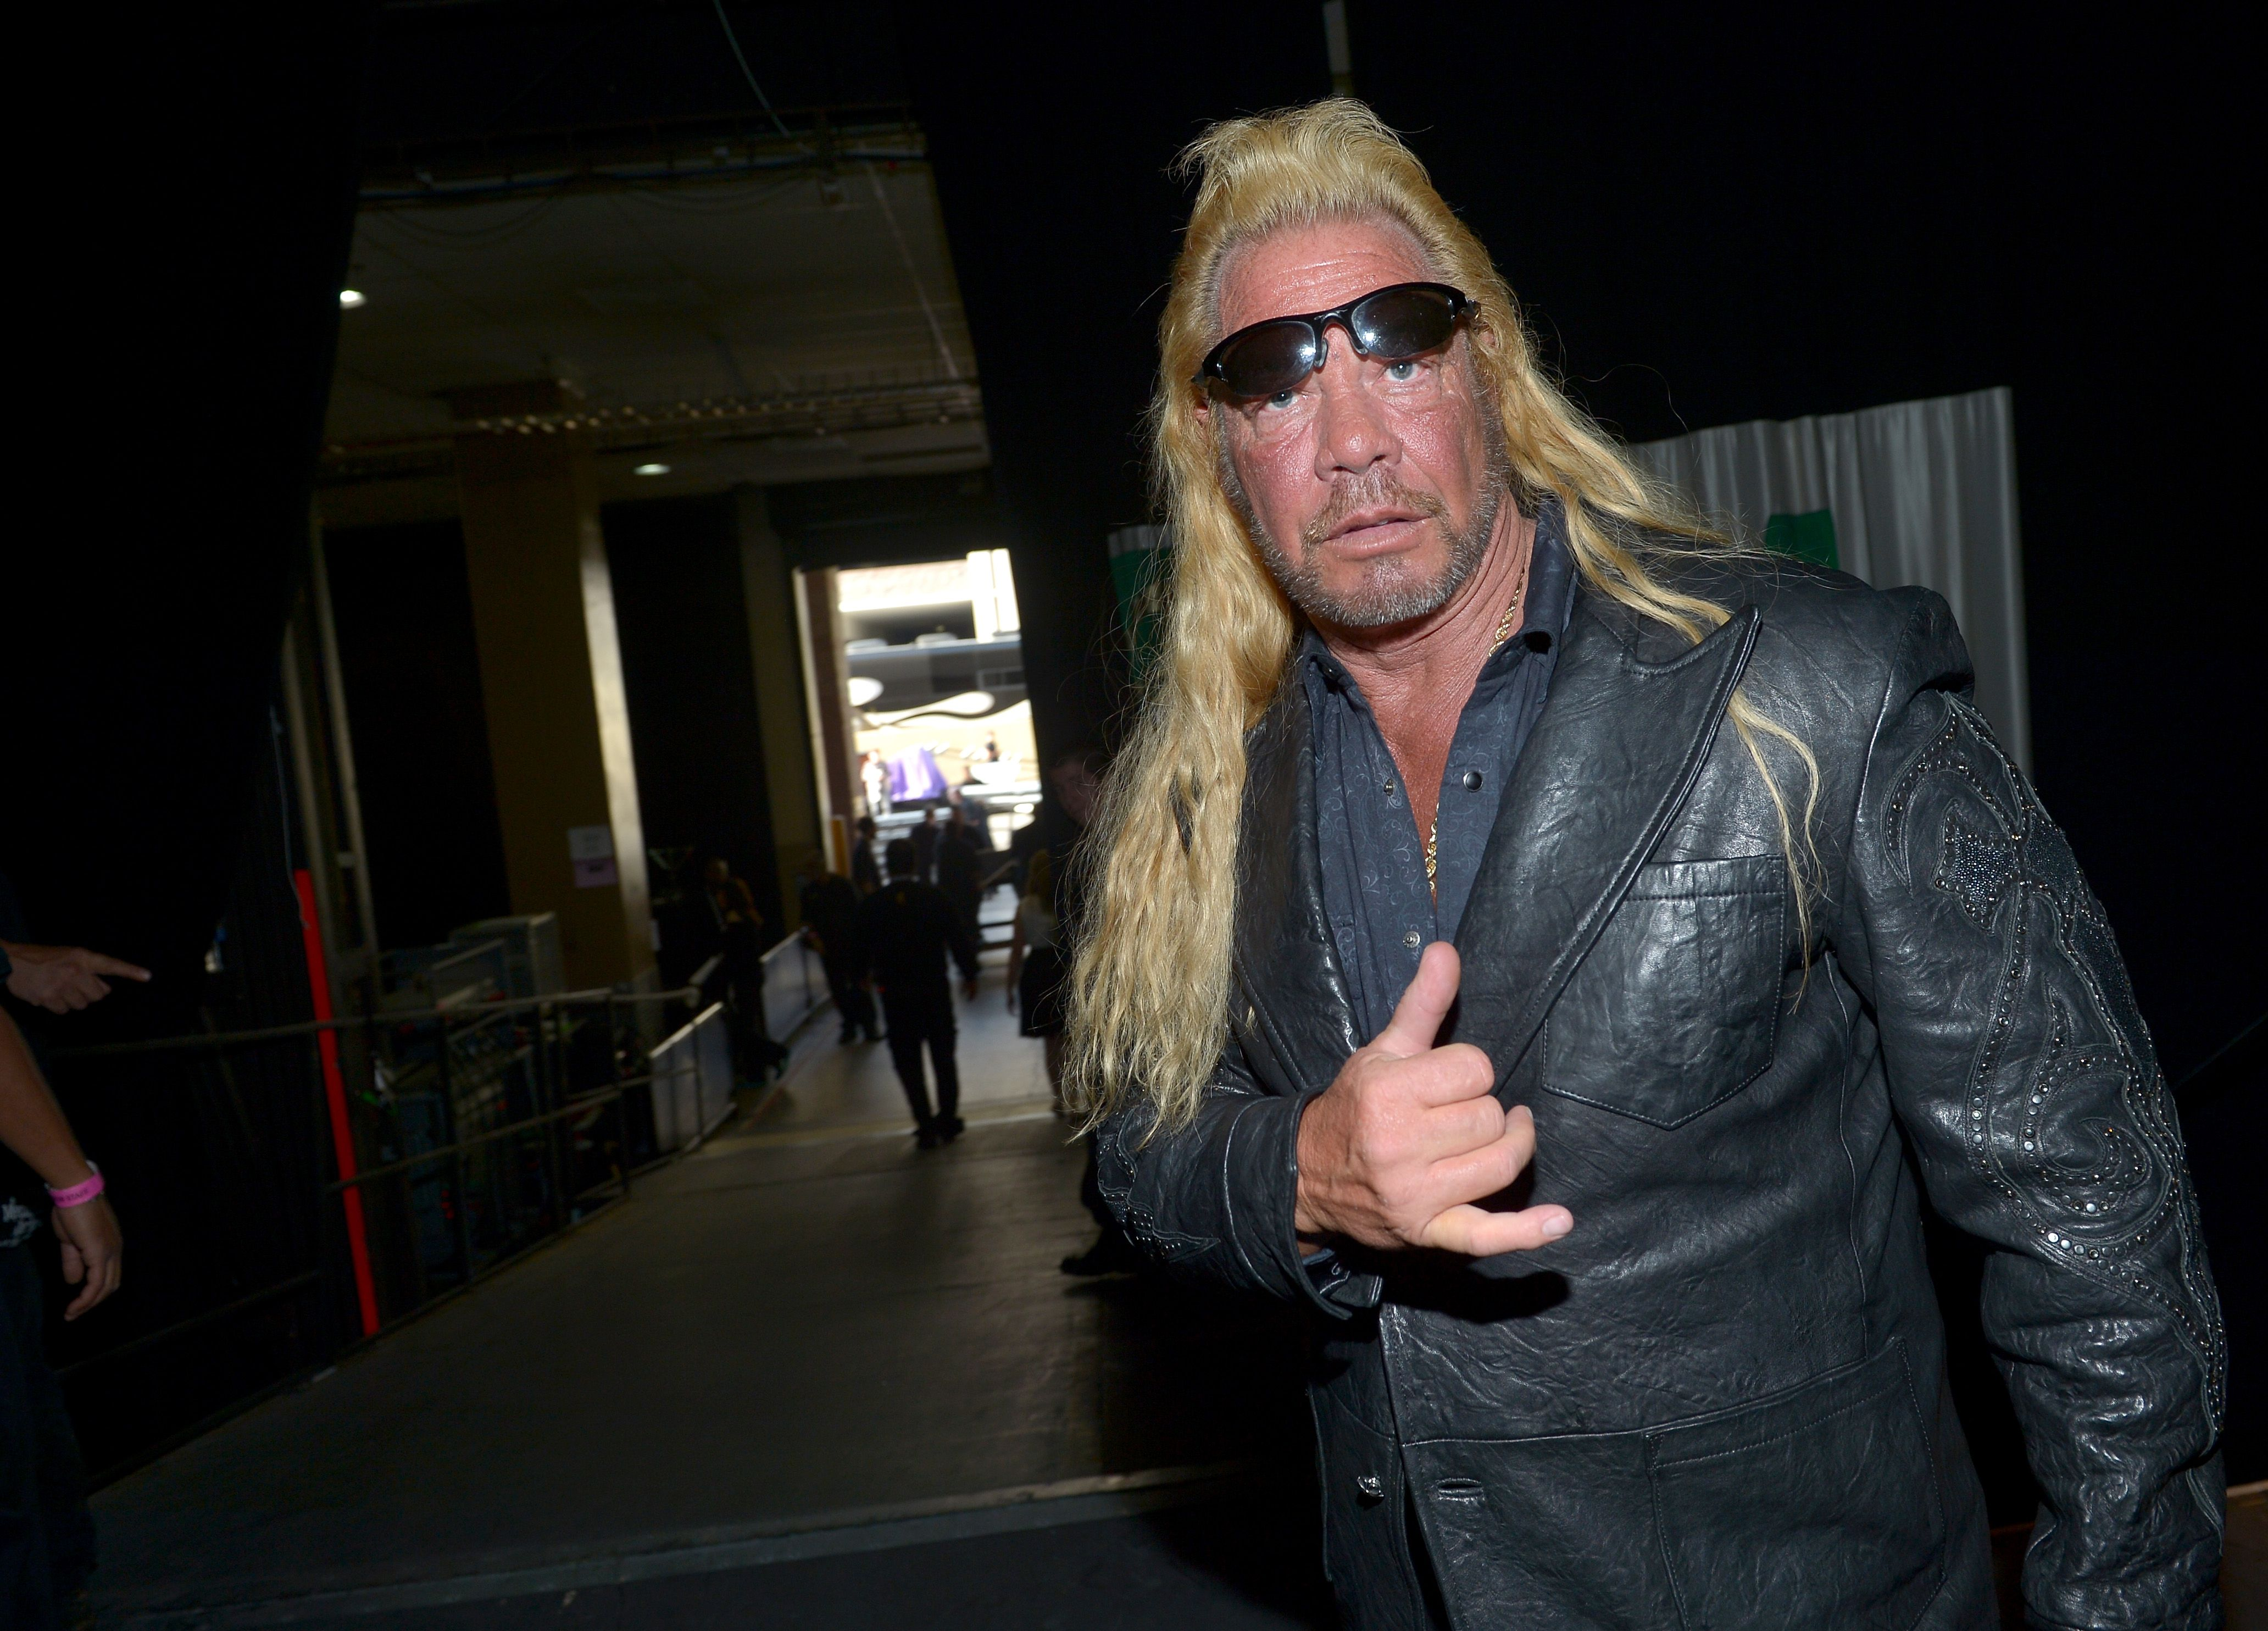 Duane Chapman at the 48th Annual Academy of Country Music Awards at the MGM Grand Garden Arena on April 7, 2013 | Getty Images